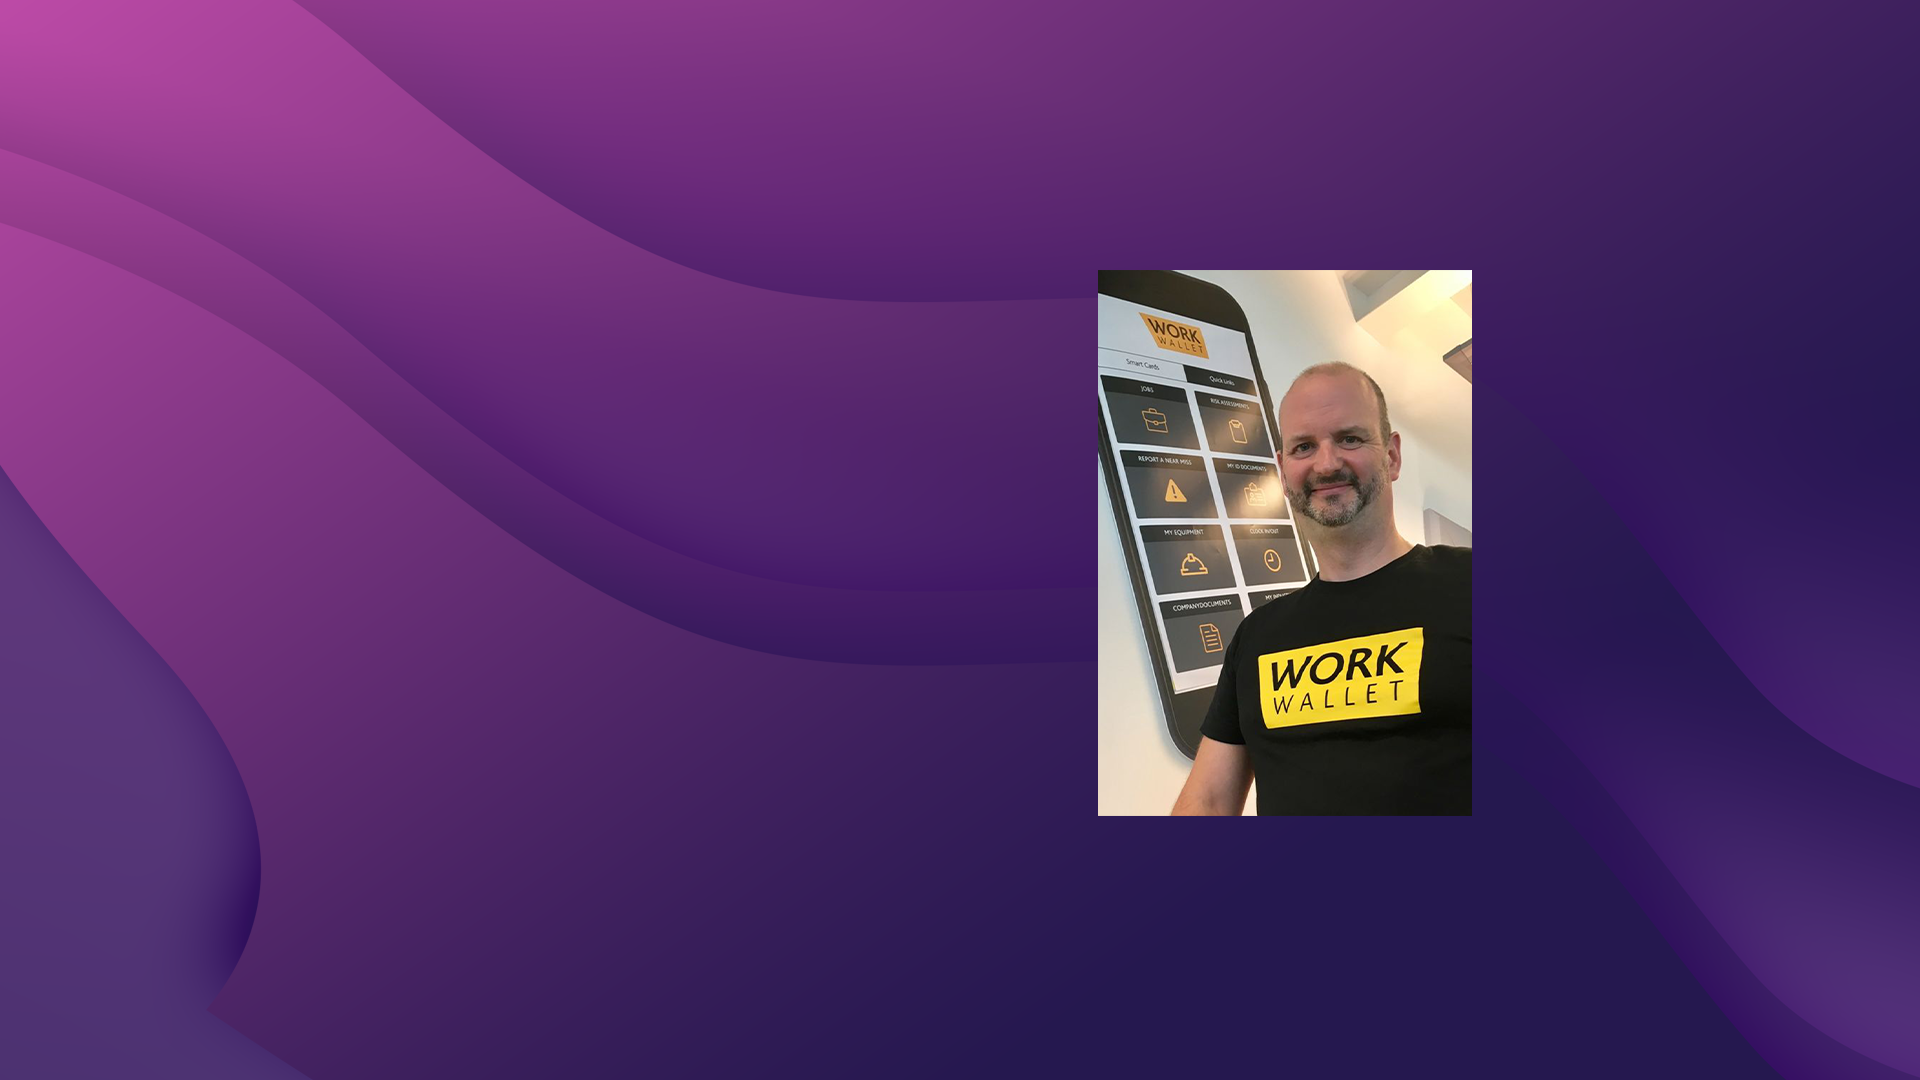 899: How Work Wallet Is Transforming Health & Safety